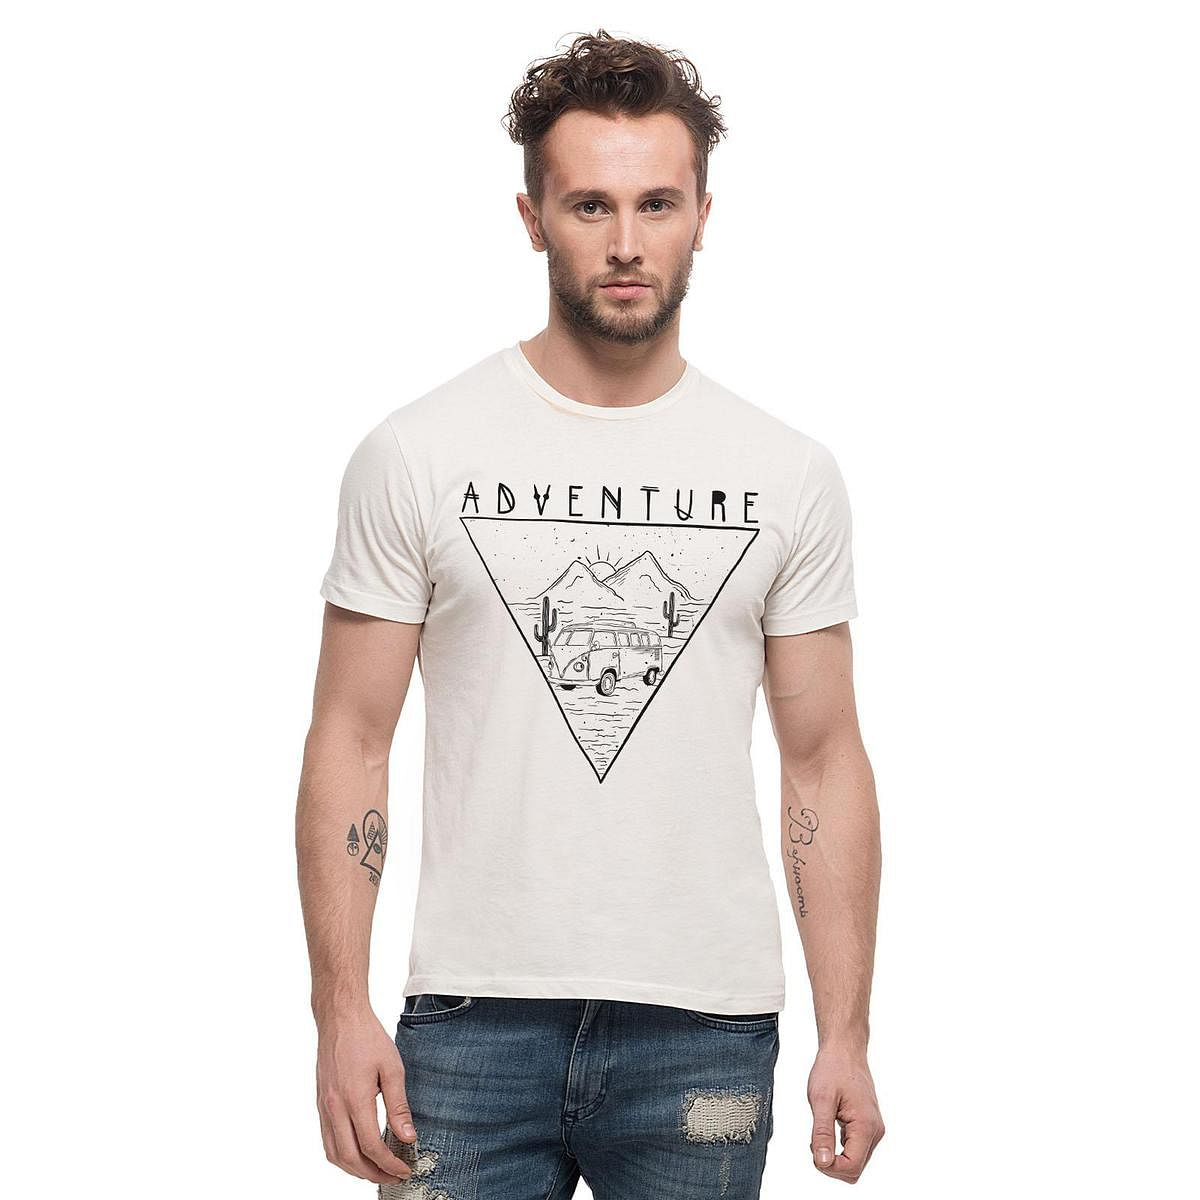 THREADCURRY - White Colored Adventure   Travel Inspirational Motivational Quote Cotton Printed Creative T-shirt for Men